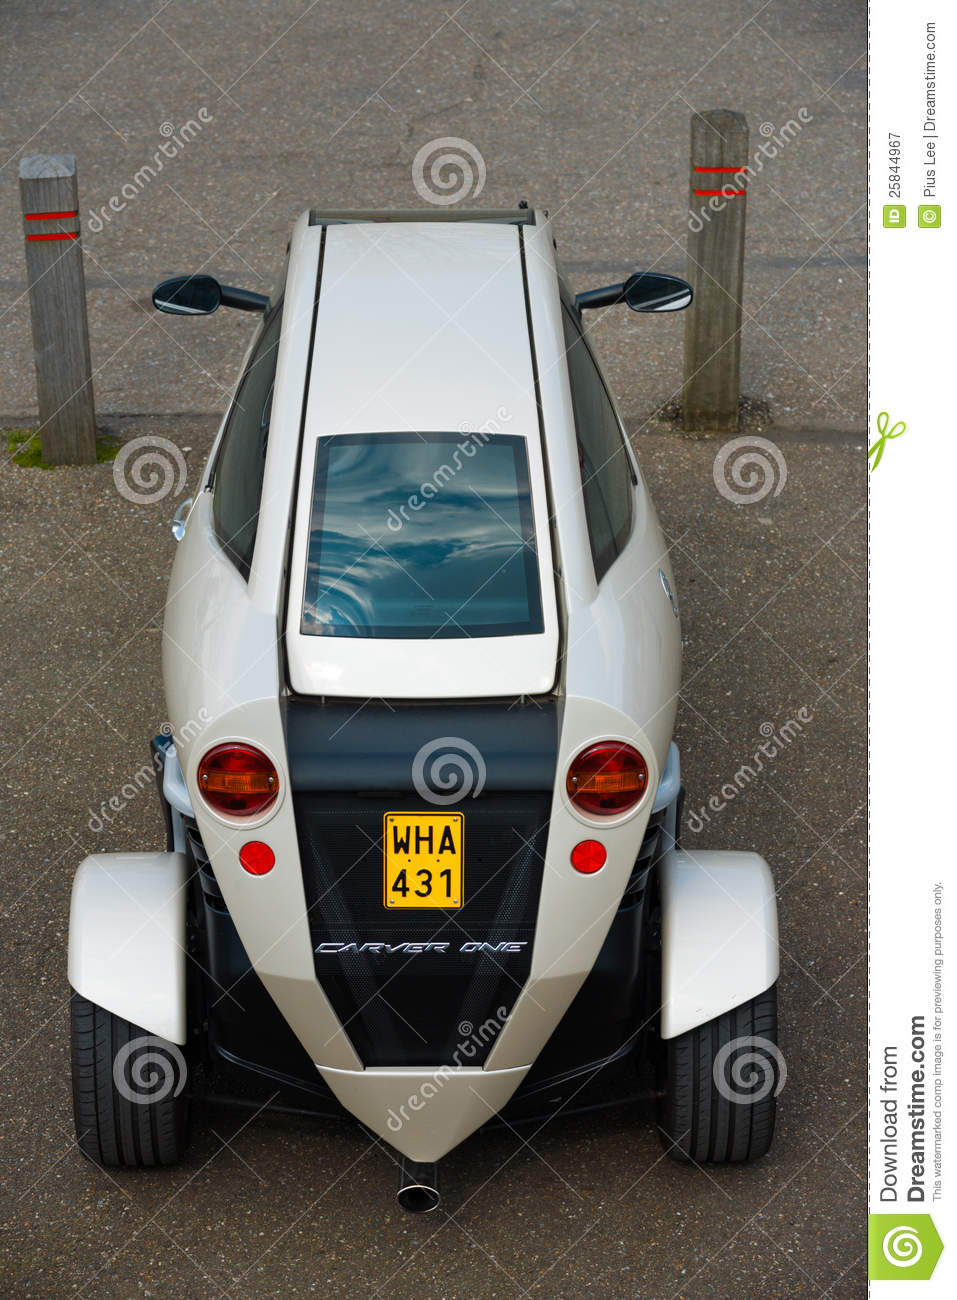 Trade Motorcycle For Car >> Carver One Rear Hybrid Car Motorcycle Editorial Photography